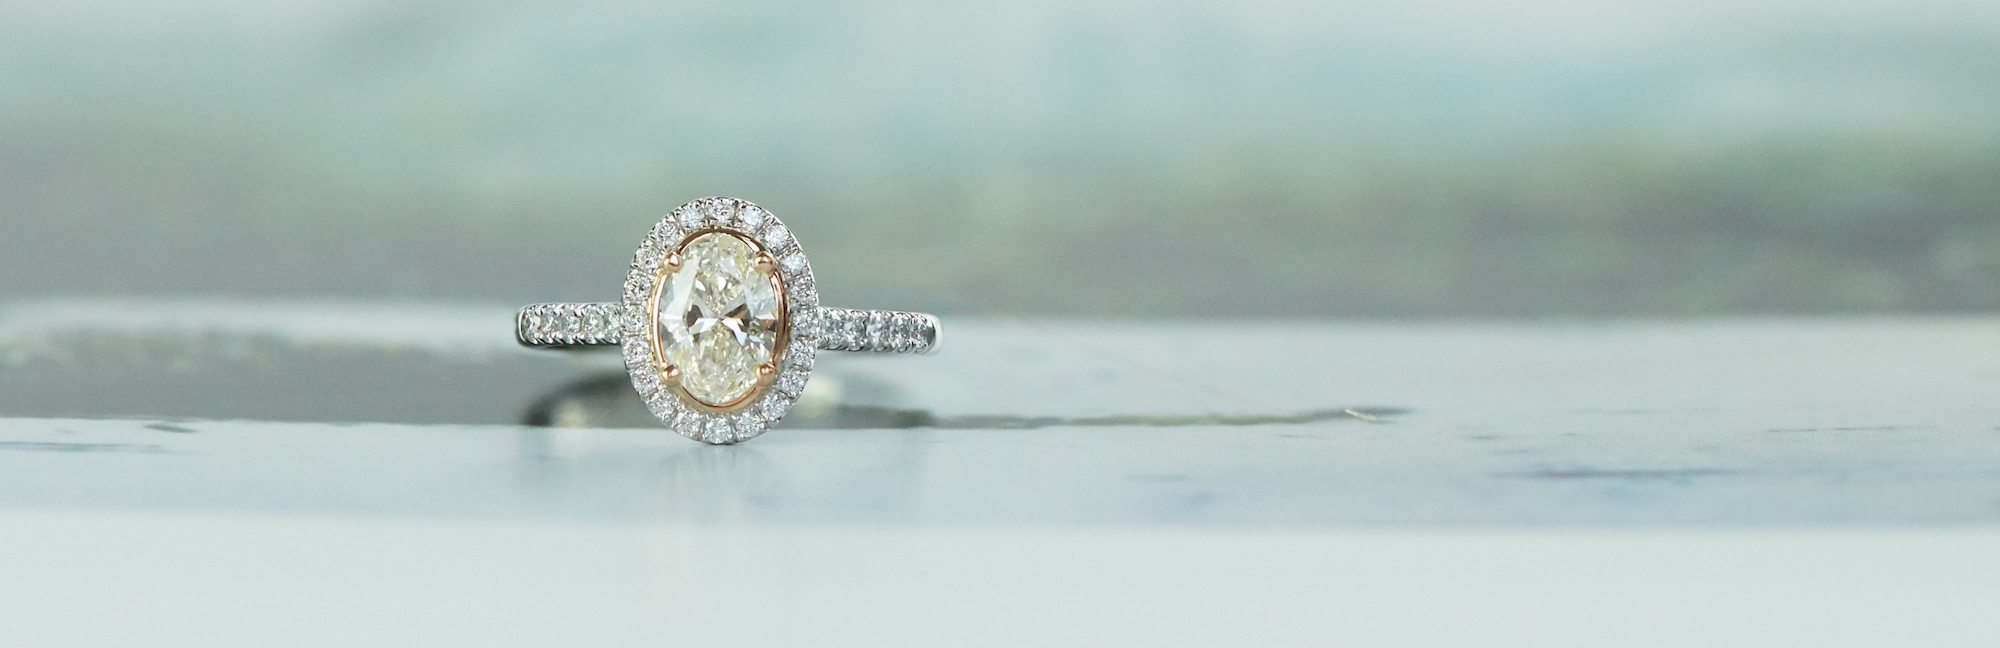 Oval Diamond Engagement Ring from The Blush Collection